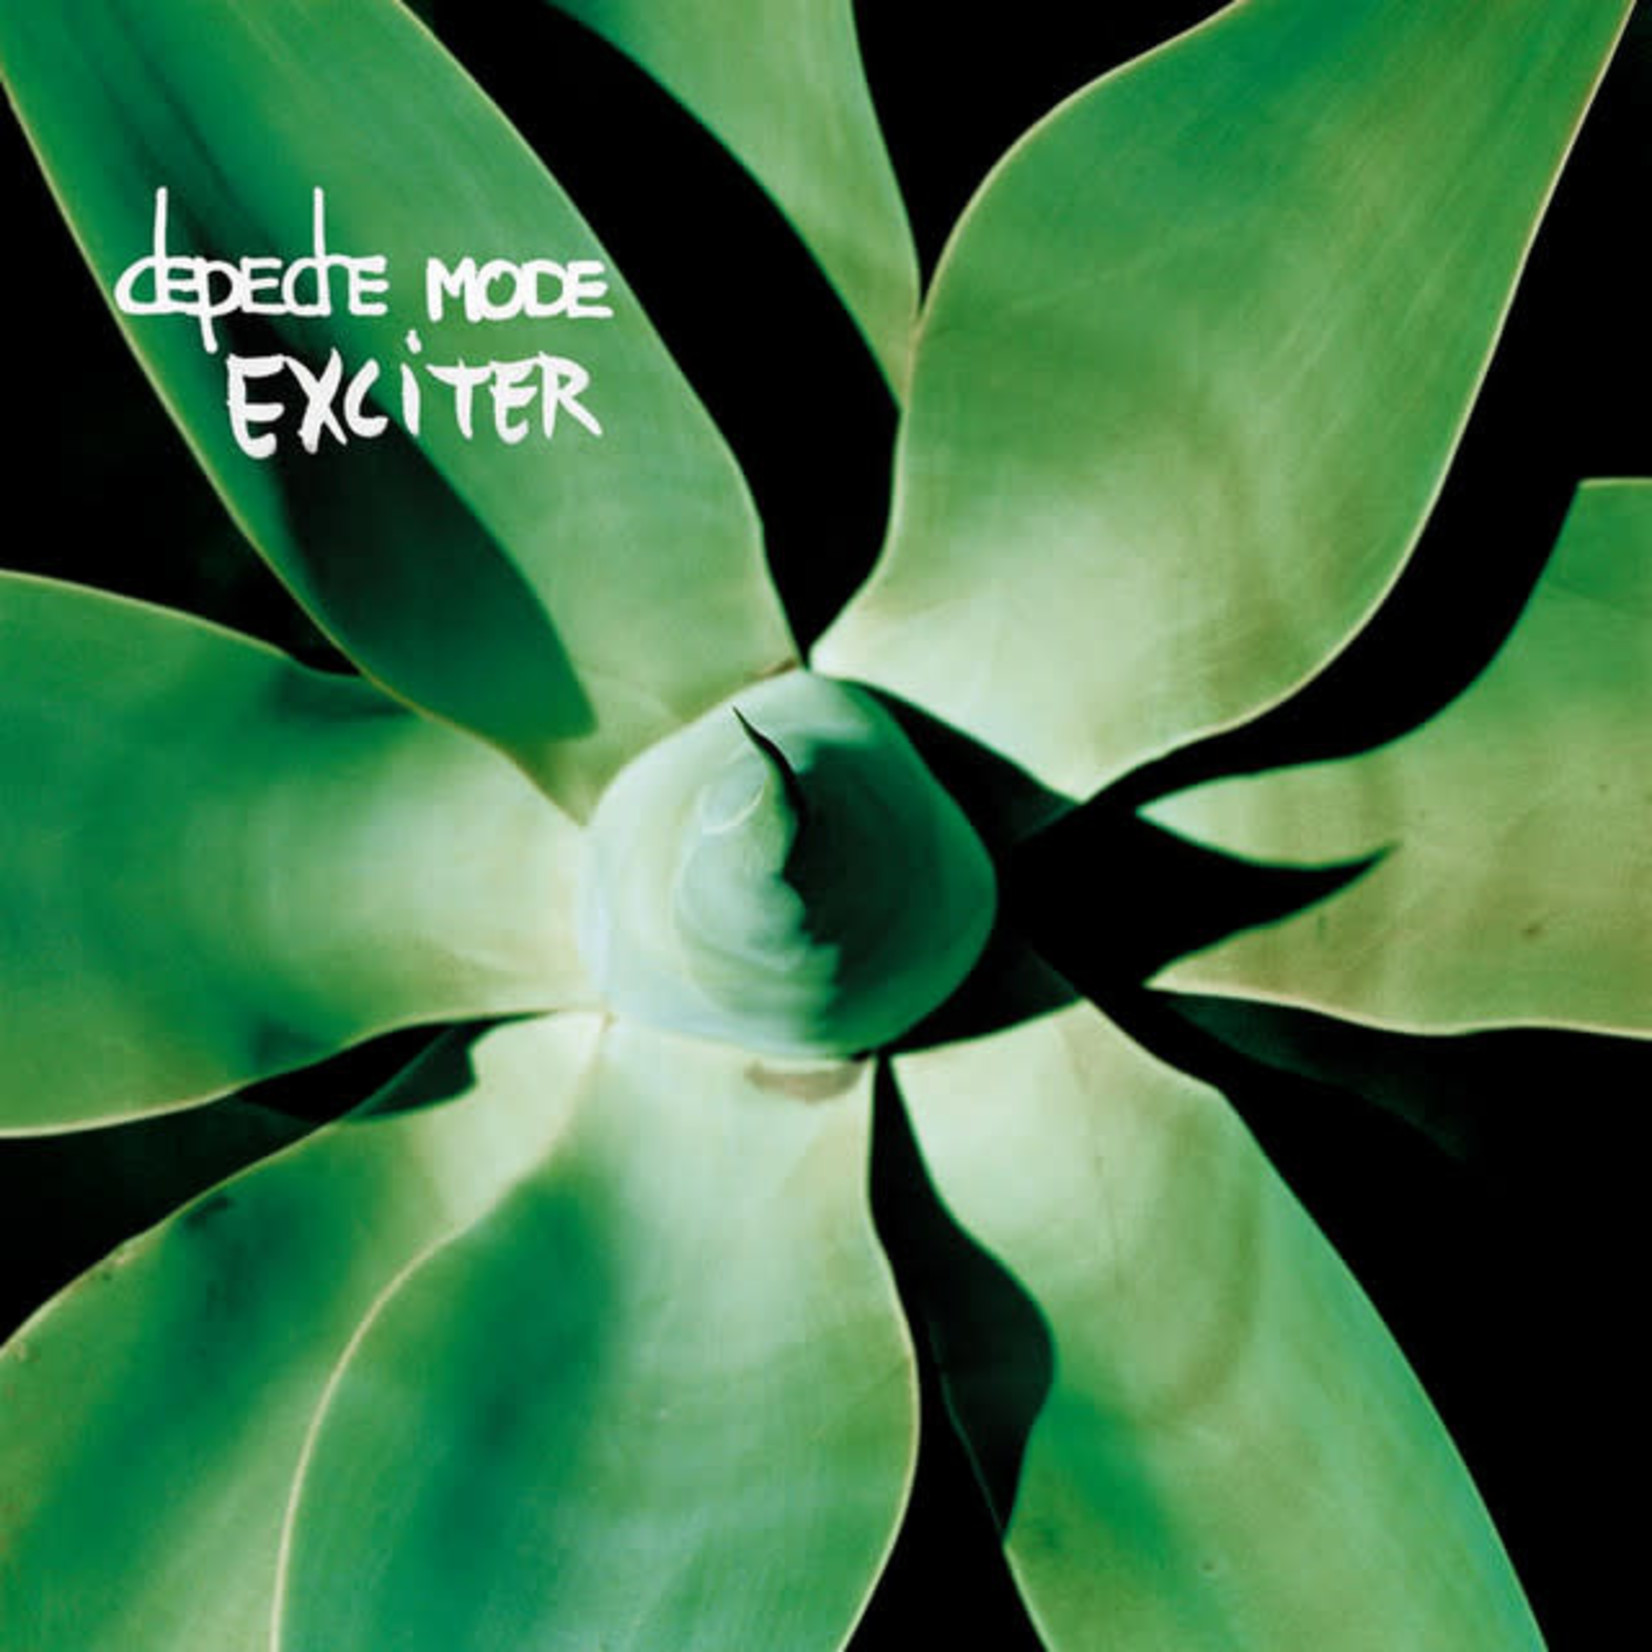 Vinyl Depeche Mode - Exciter (UK)